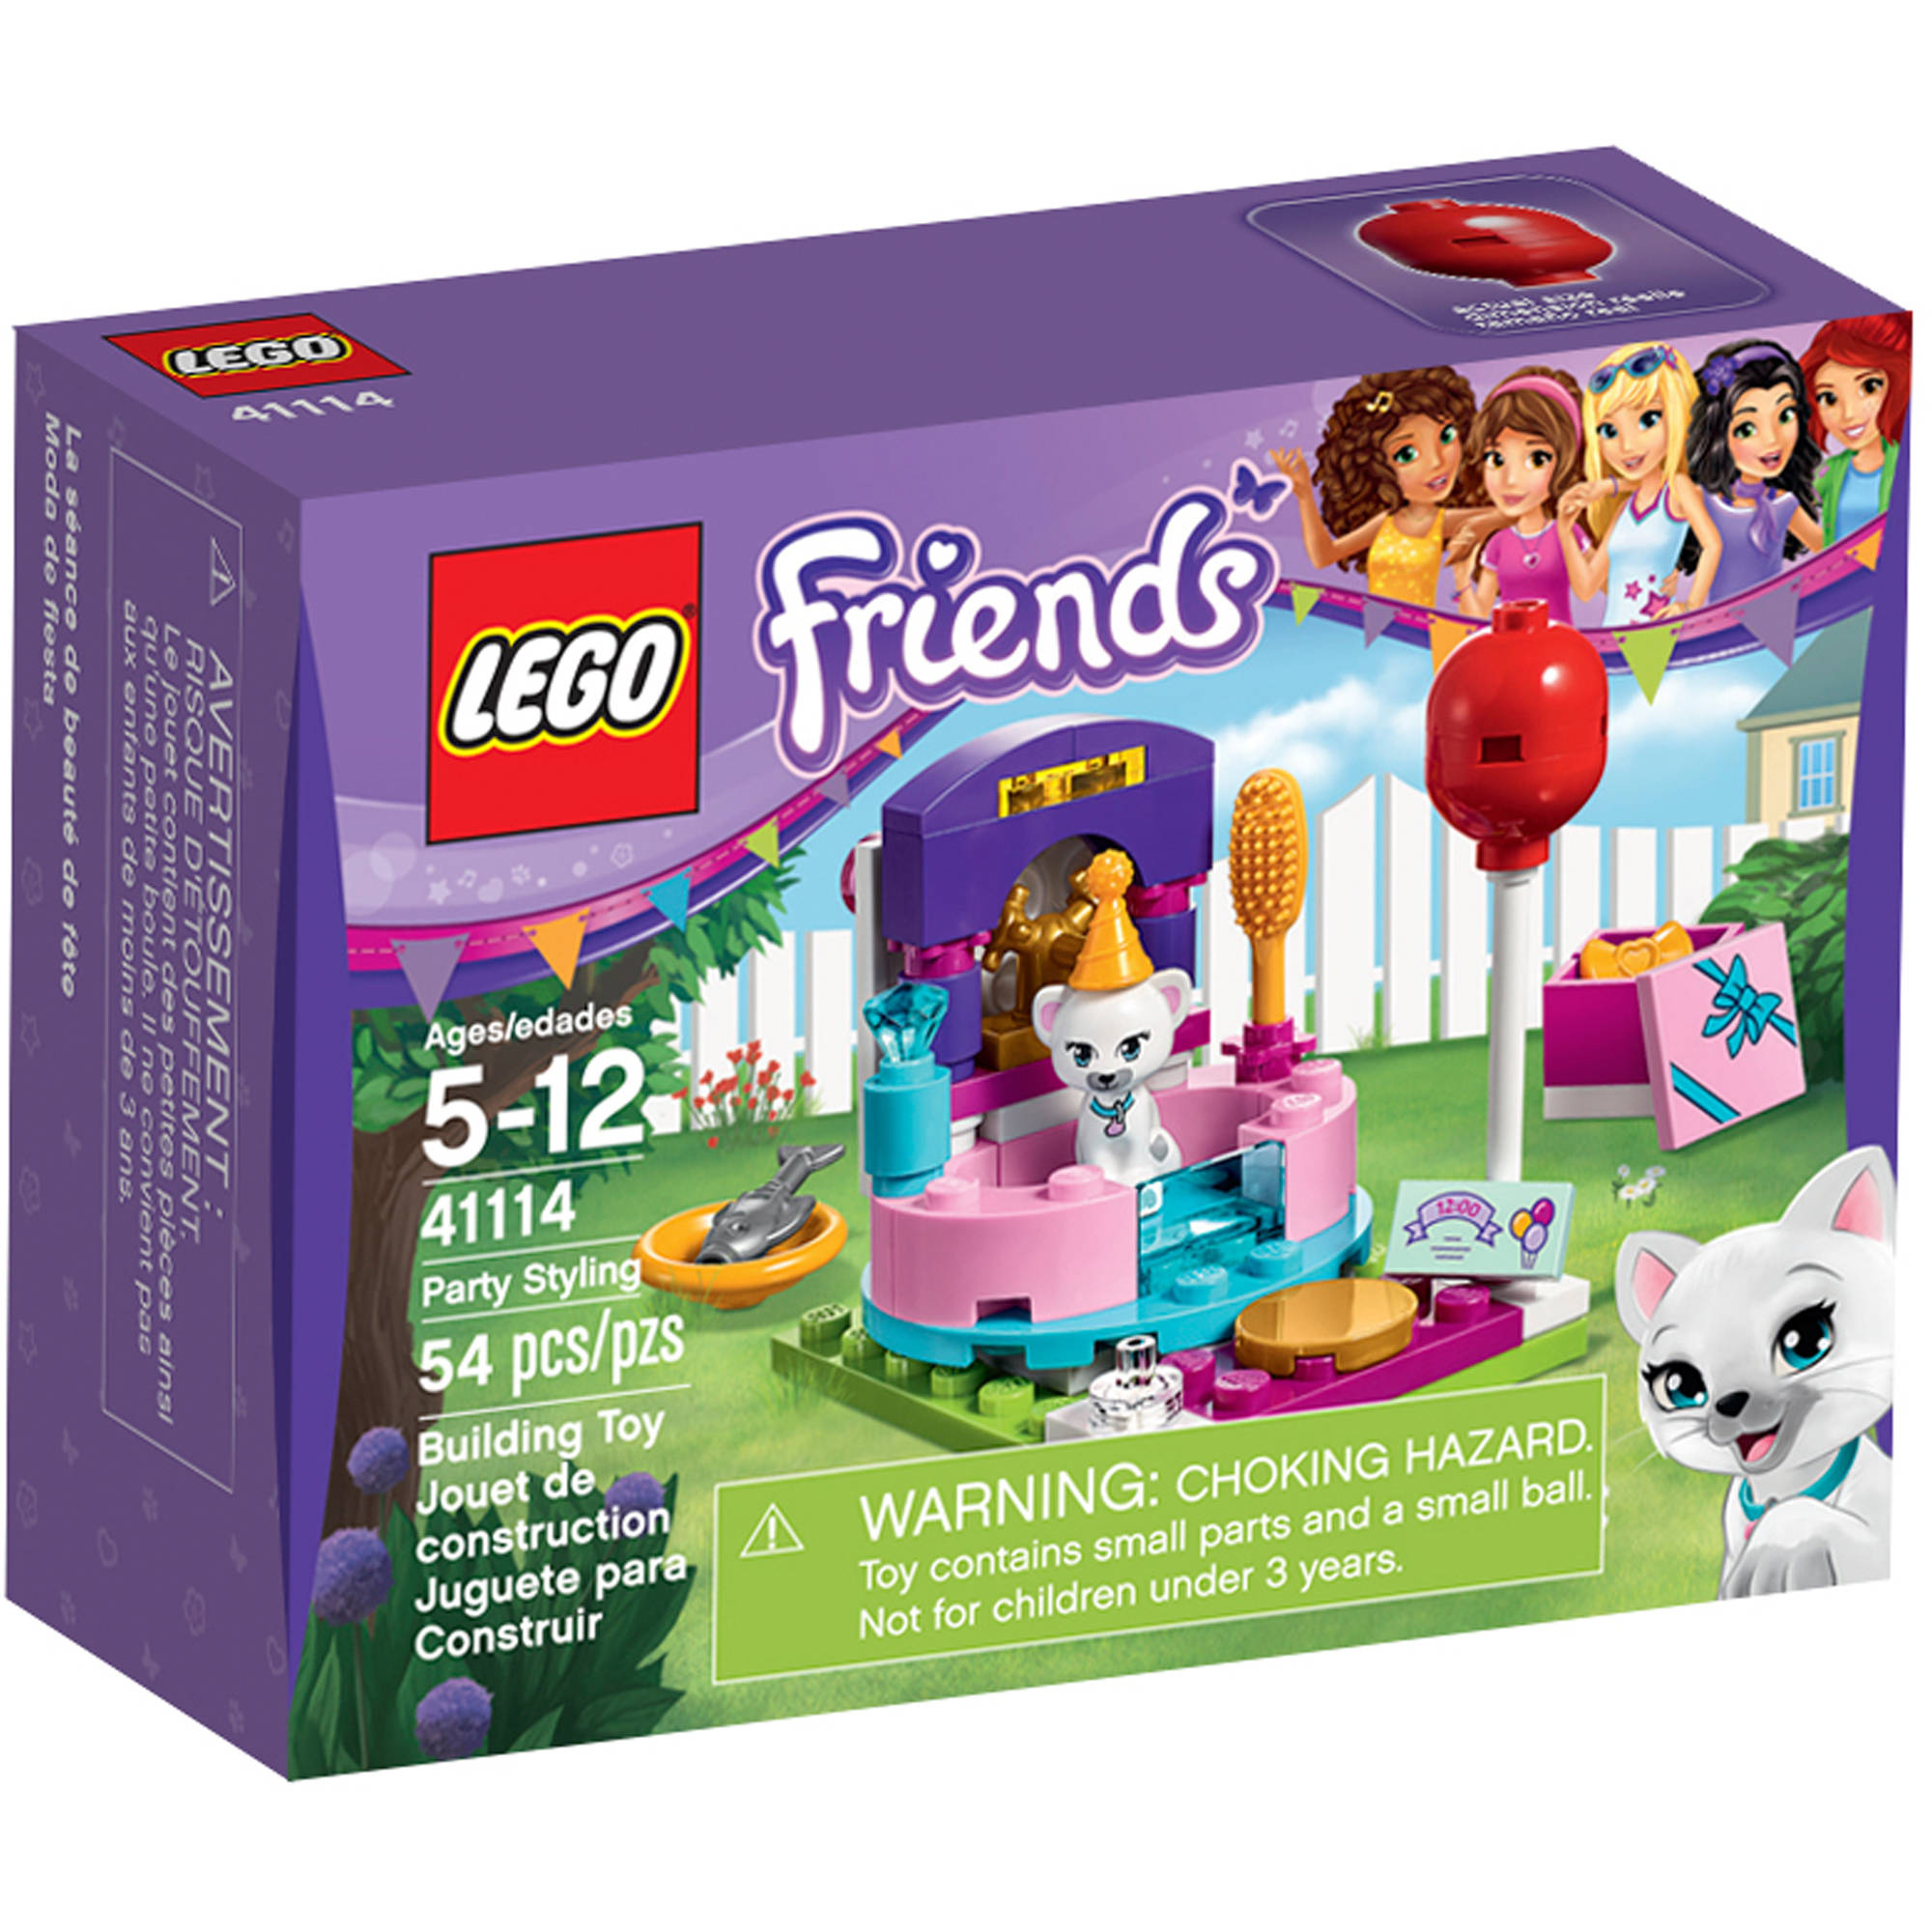 Party Styling41114 Party Lego Friends Styling41114 Lego Lego Friends OkiTZPXuw